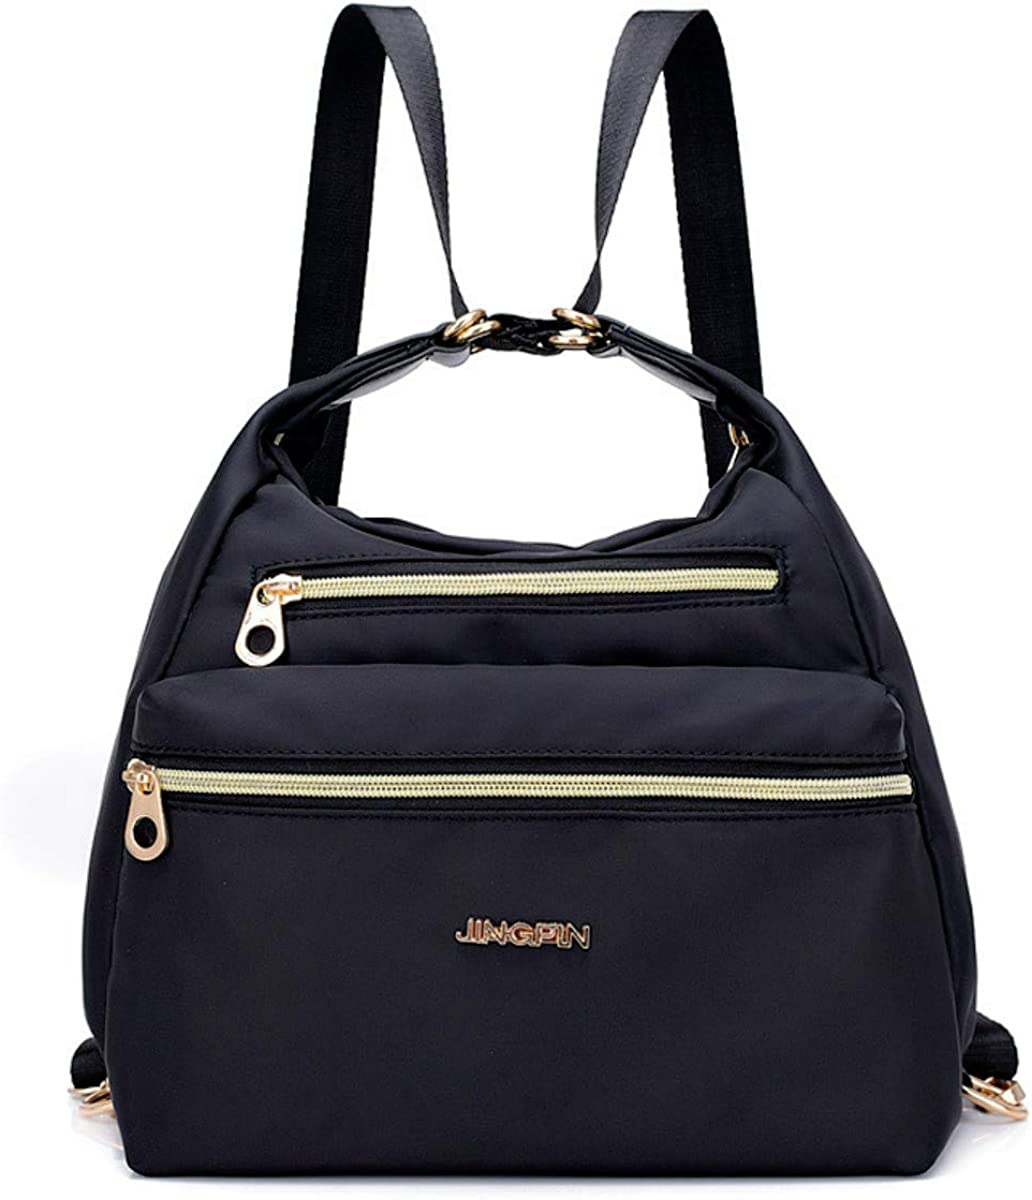 Crossbody Handbags Shoulder Bags for Messen Casual Complete Free Limited price Shipping Women Travel